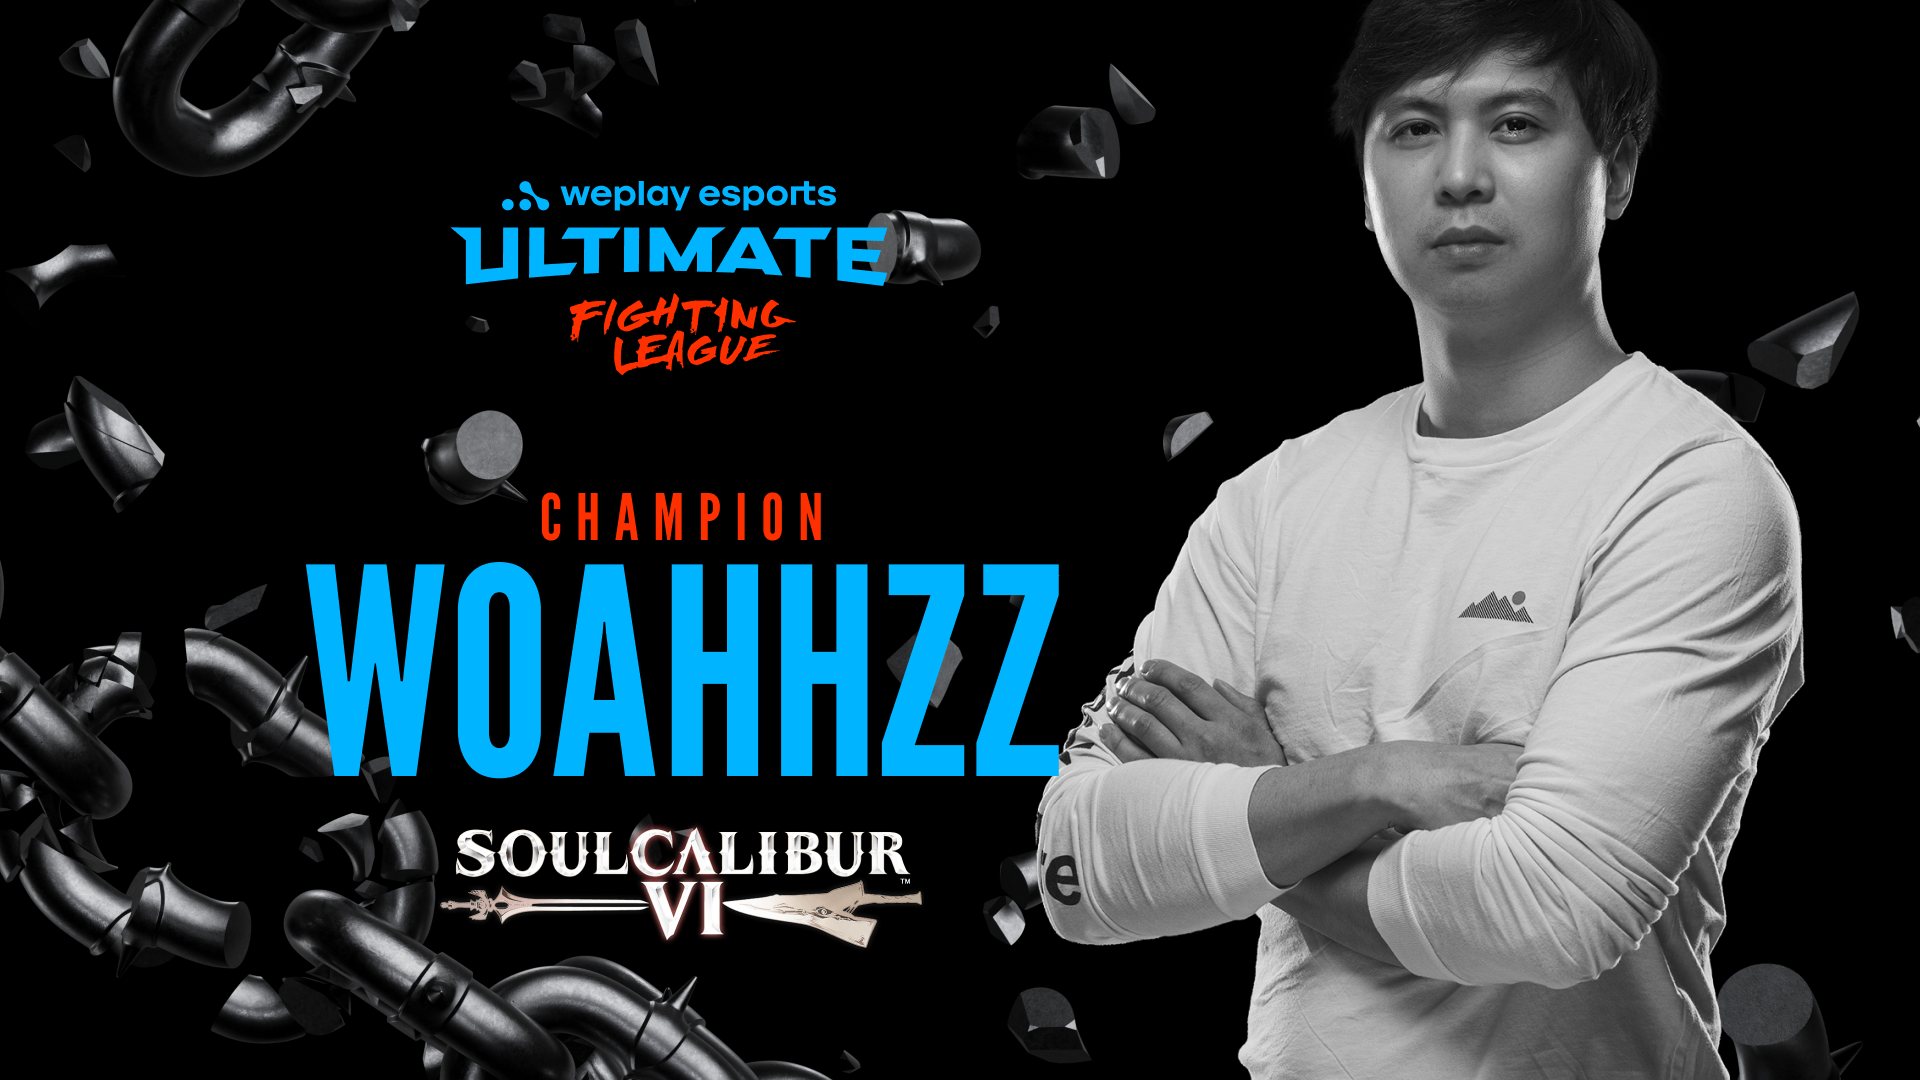 The winner of the WePlay Ultimate Fighting League SOULCALIBUR VI Event.